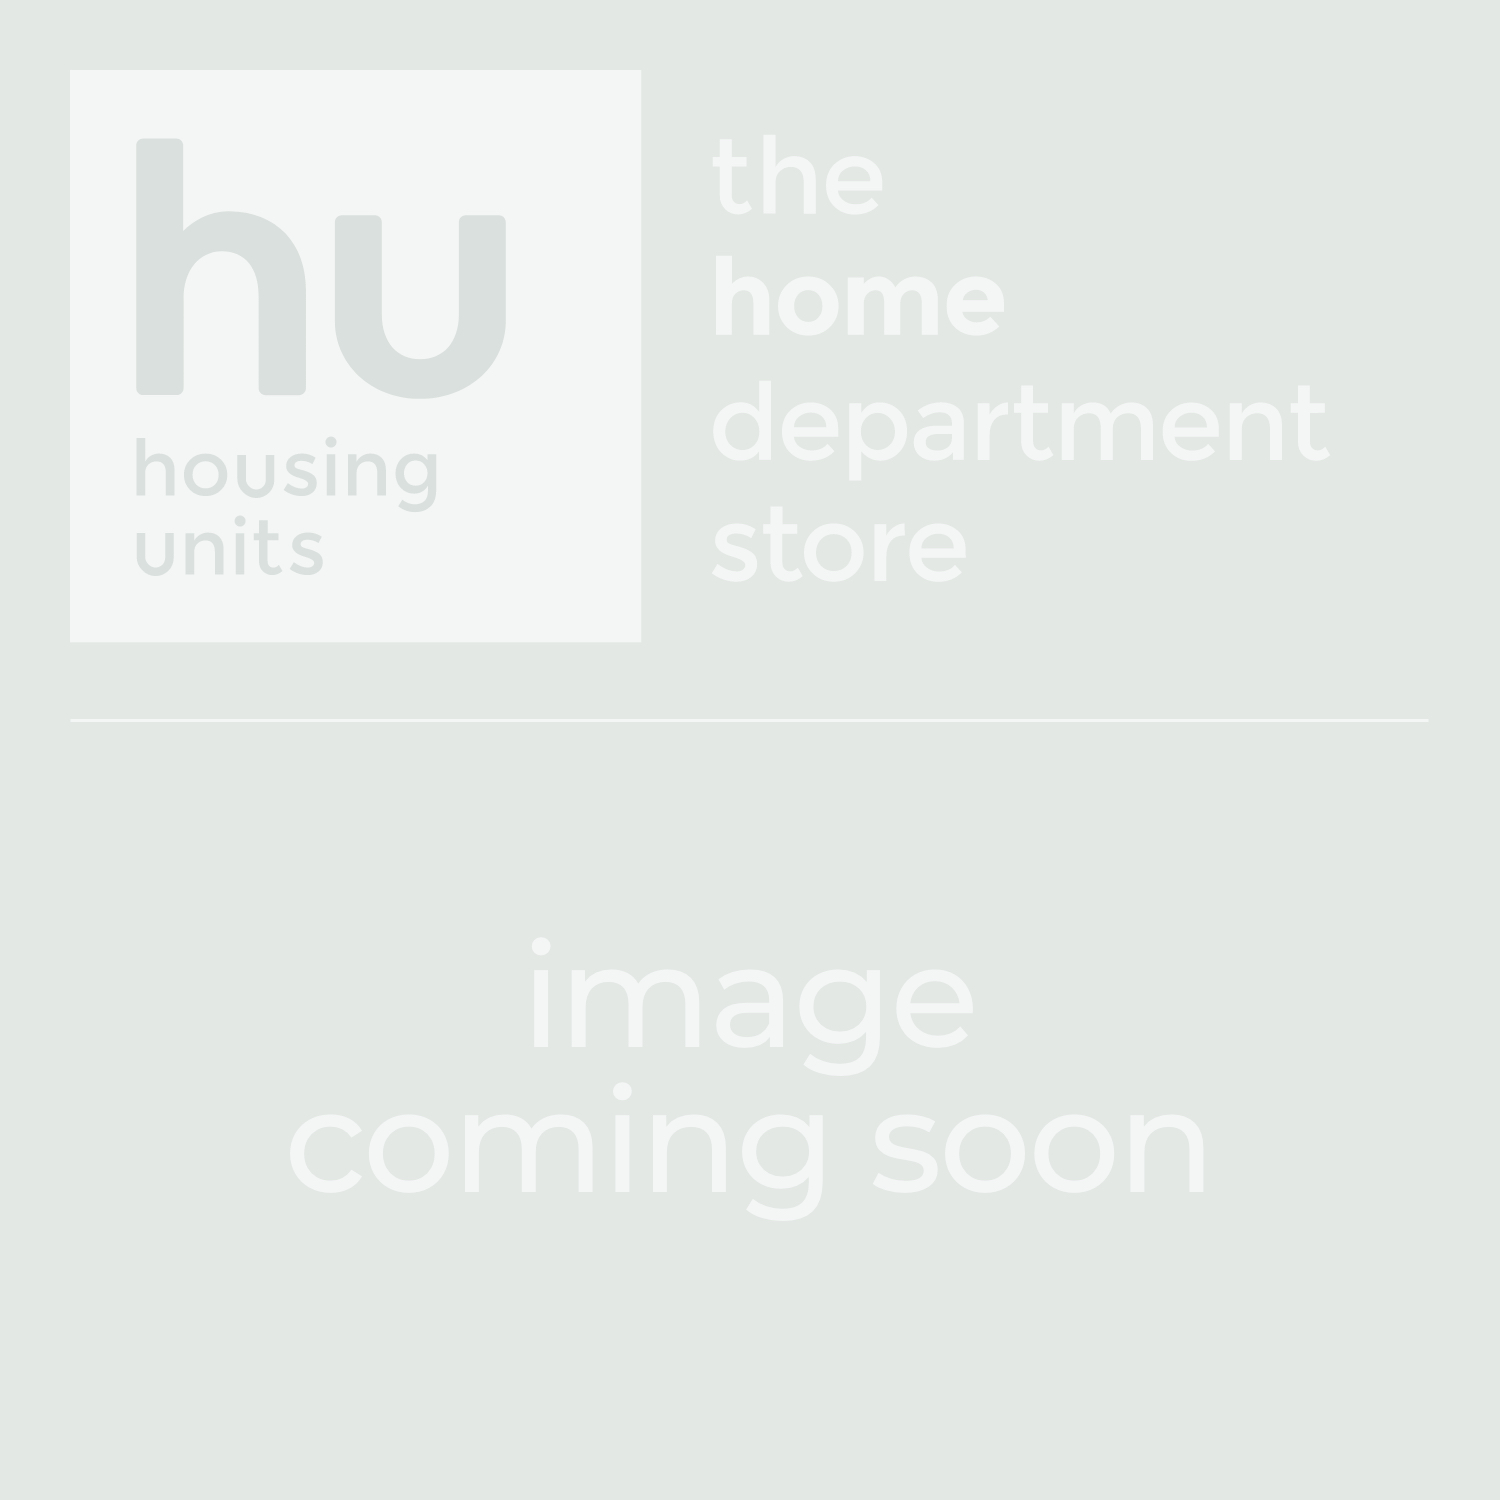 Bugatti Acqua 1.0ltr Kitchen Storage Jar | Housing Units